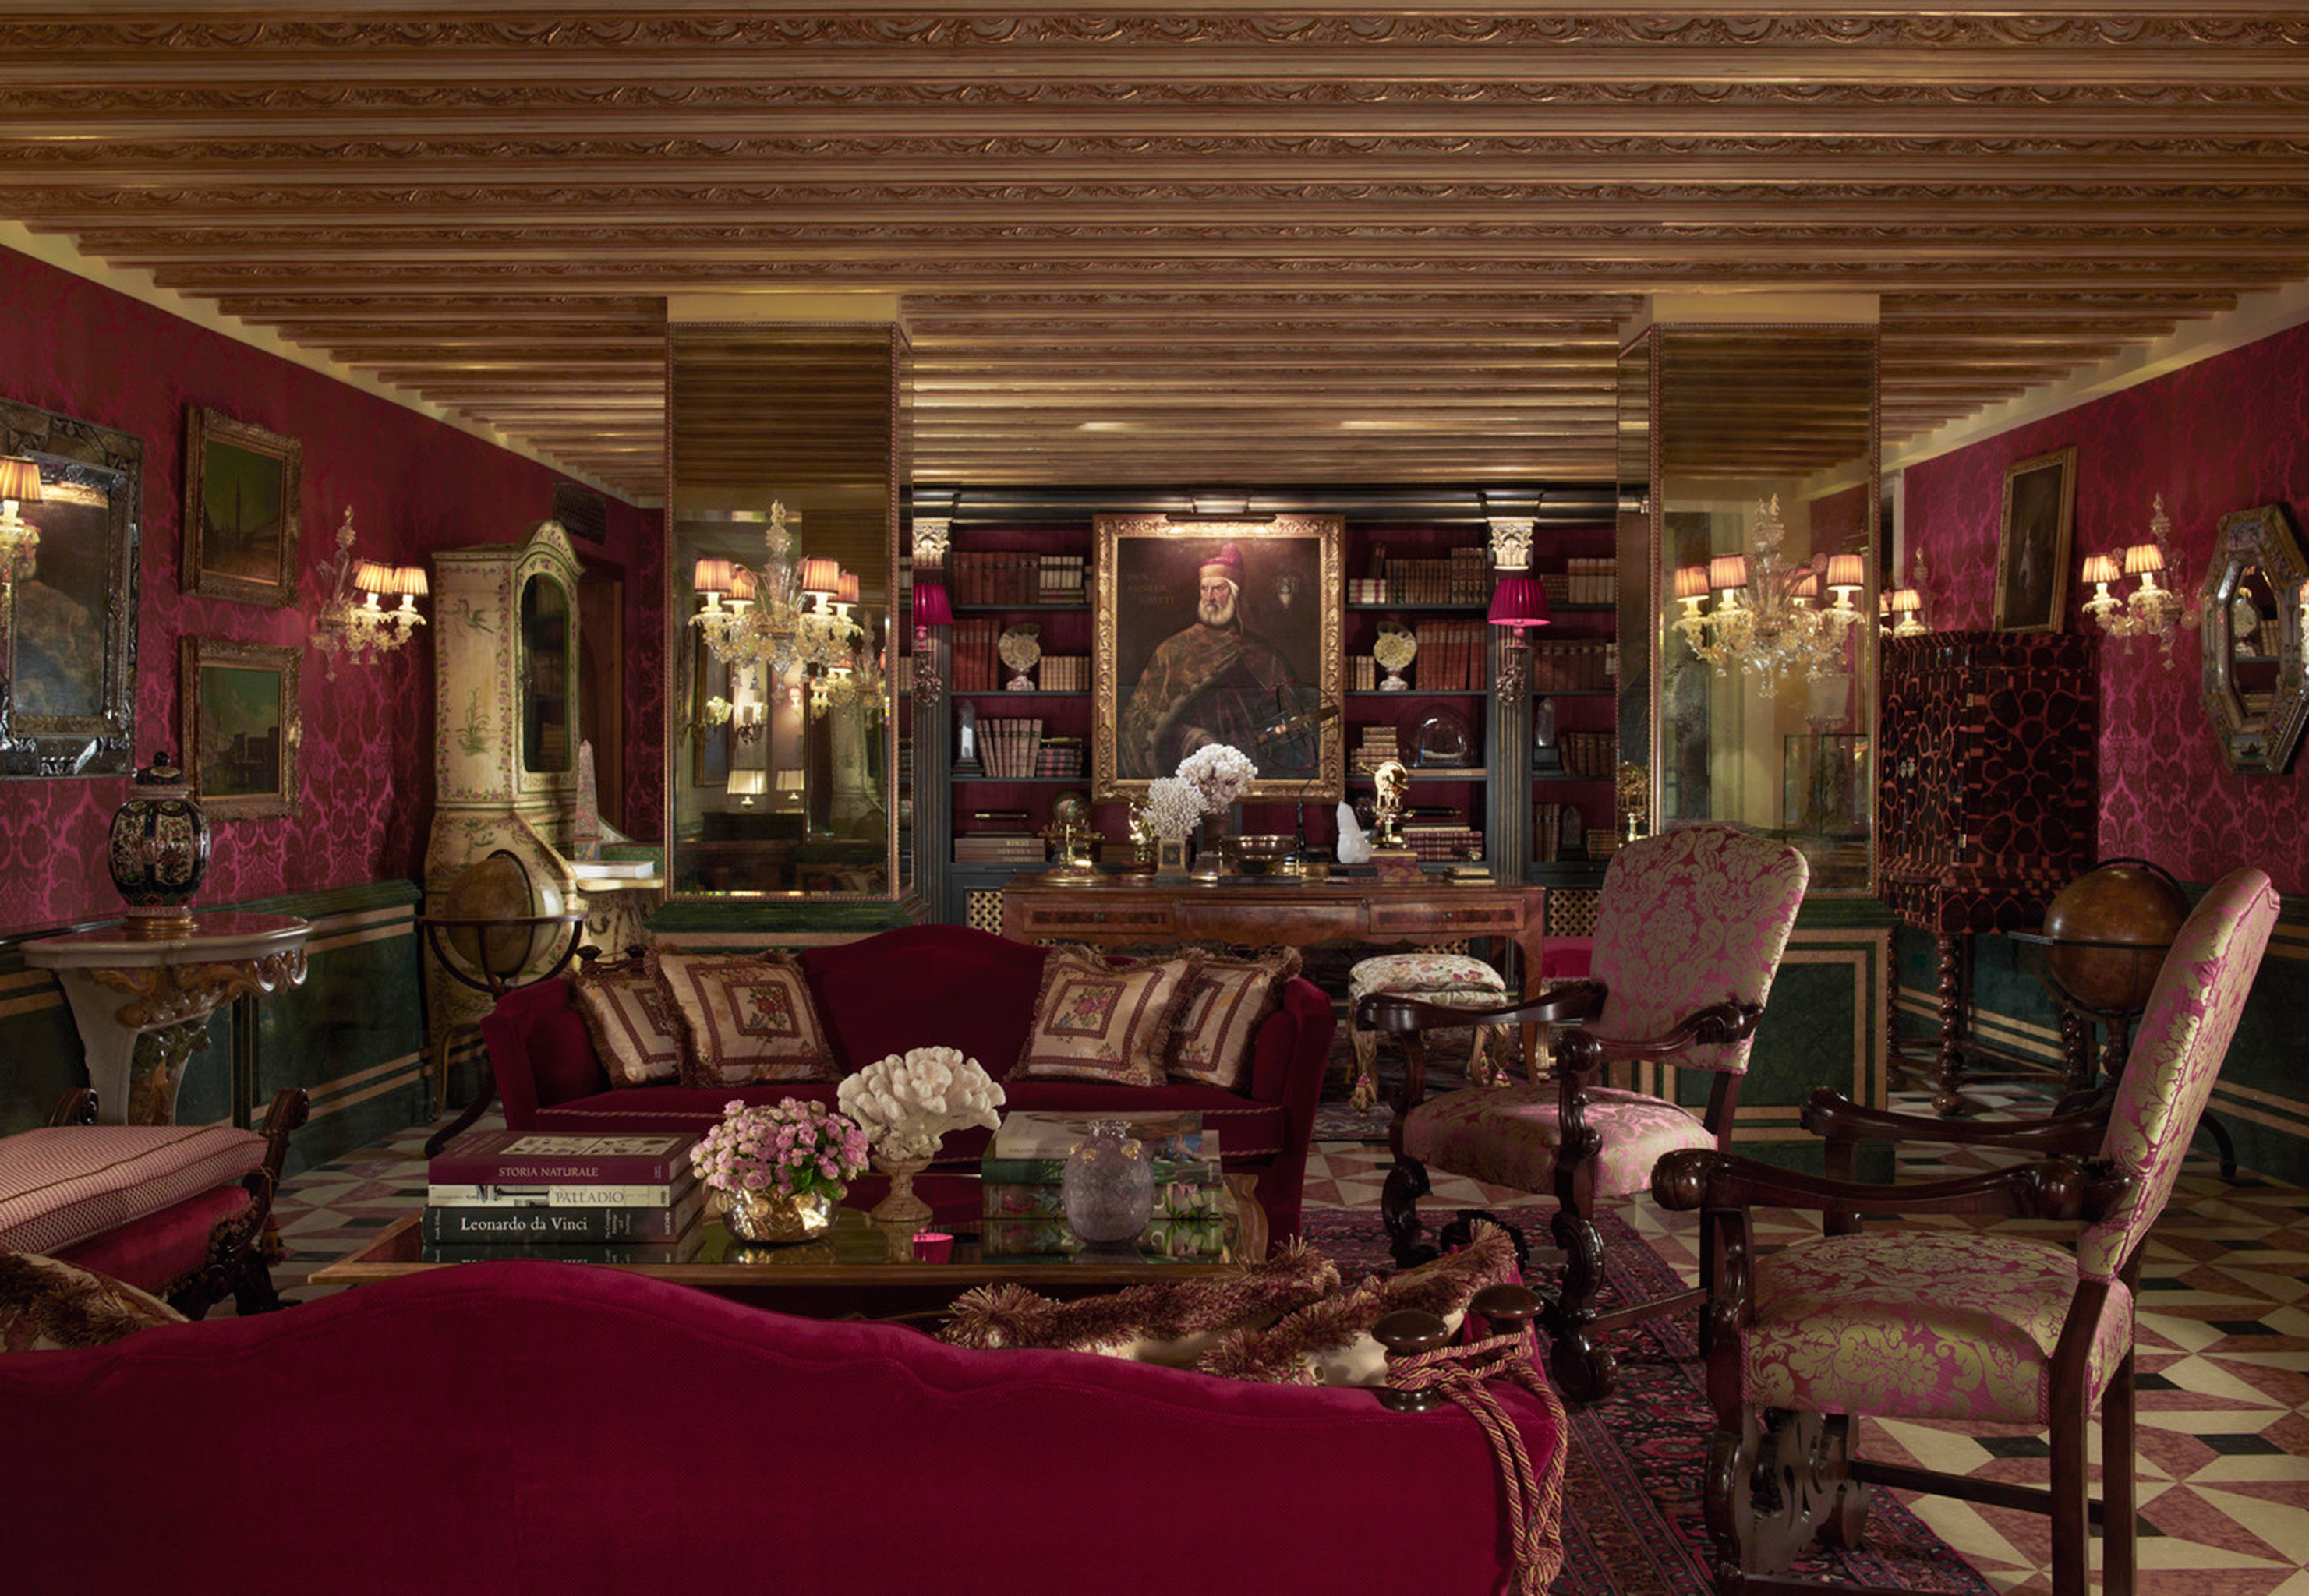 City Elegant Historic Lounge Luxury Trip Ideas restaurant red Boutique Bar